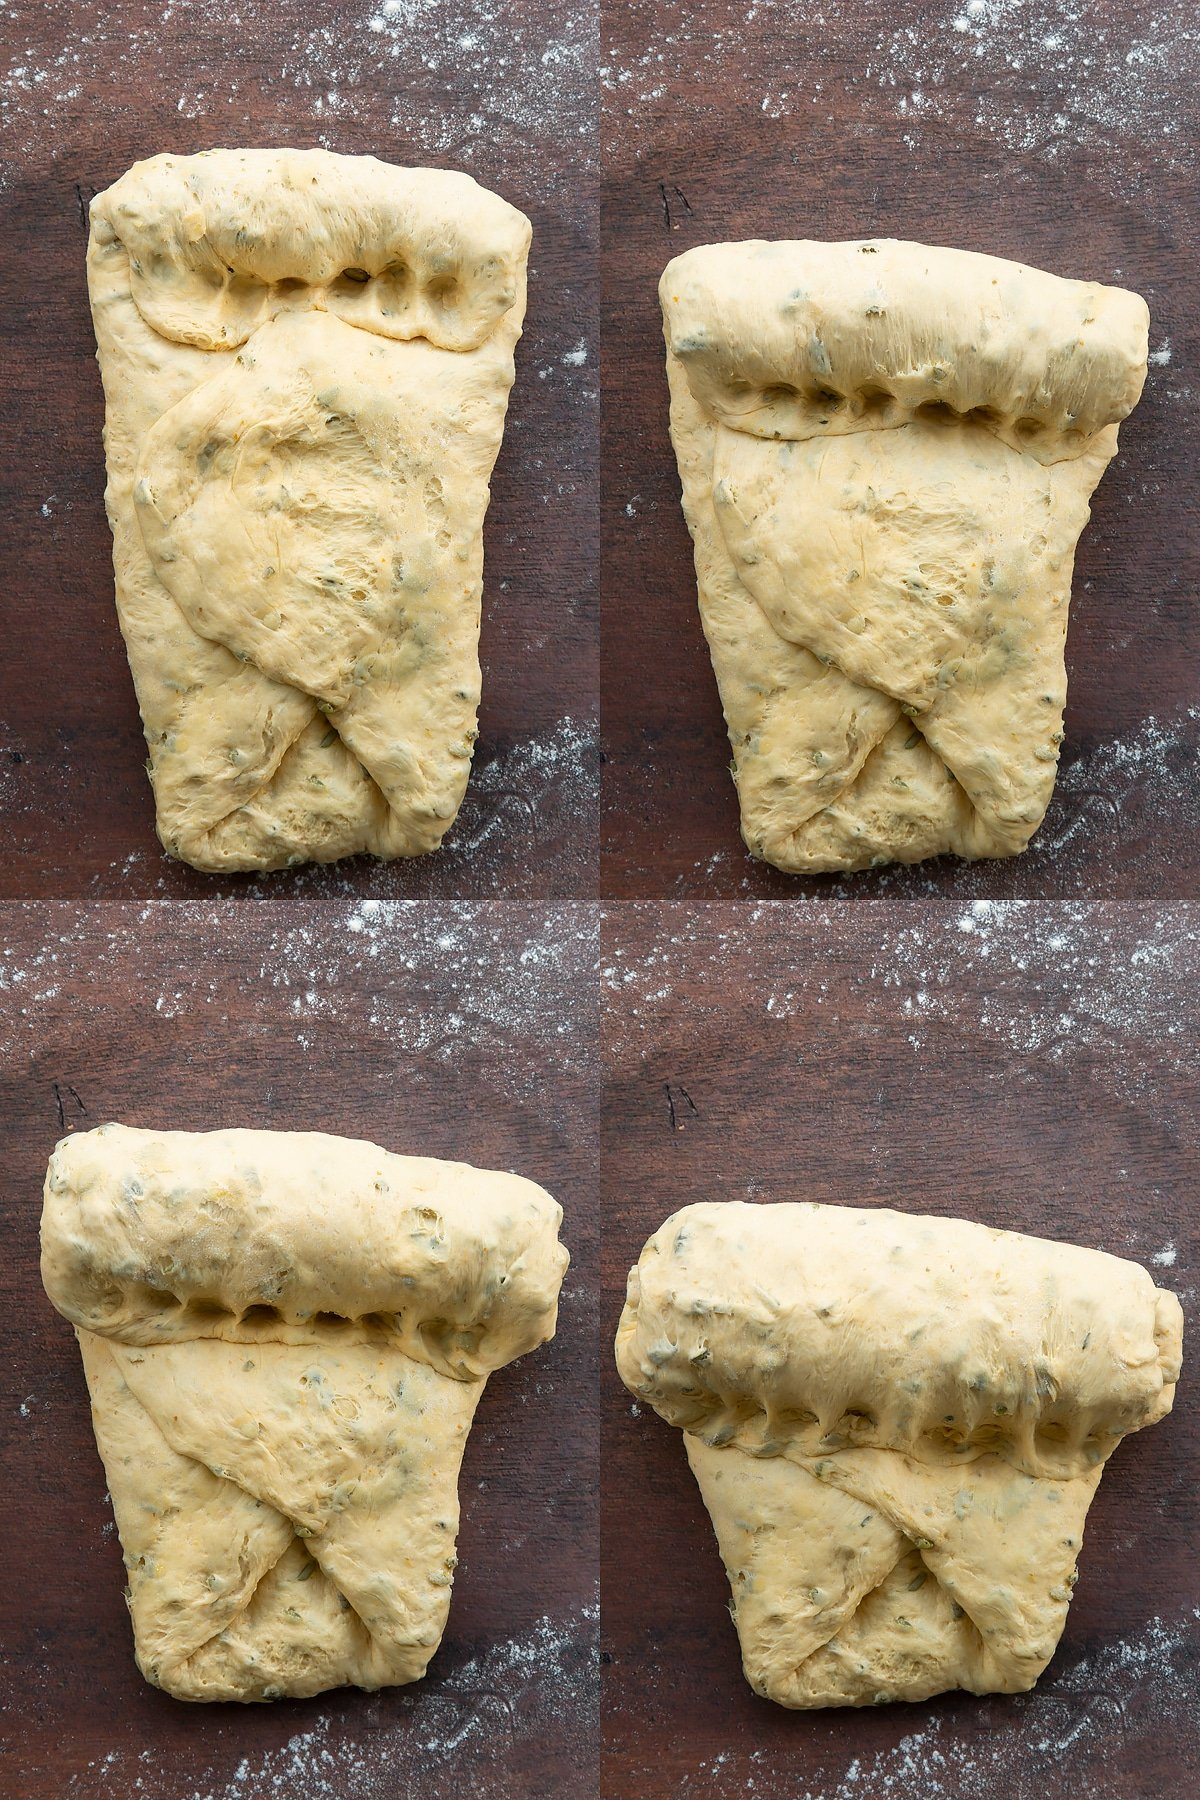 Collage of images showing pumpkin seed bread dough being shaped.